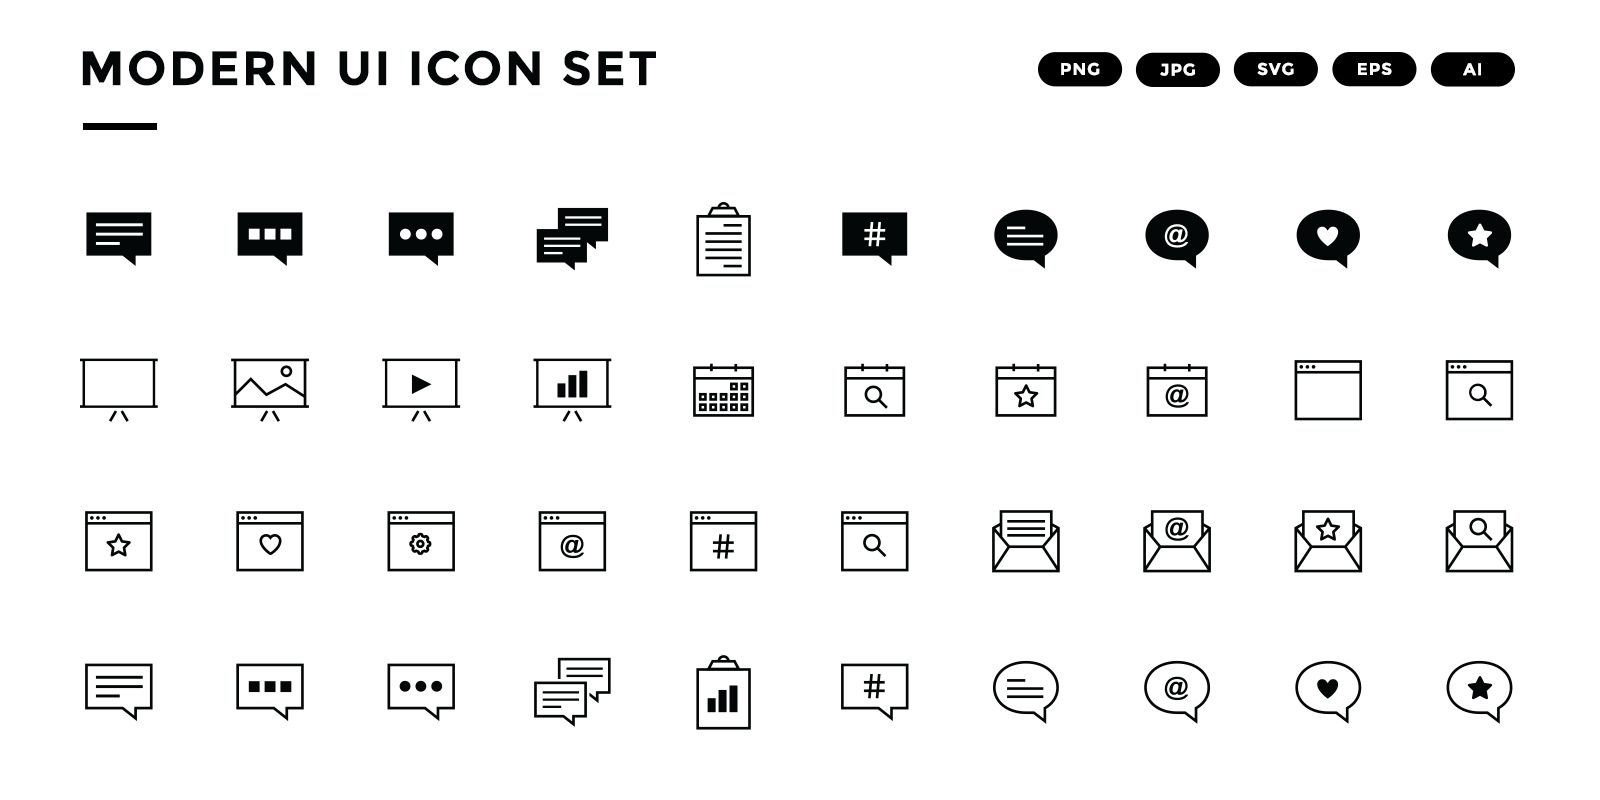 Modern UI Icon Set Screenshot 3